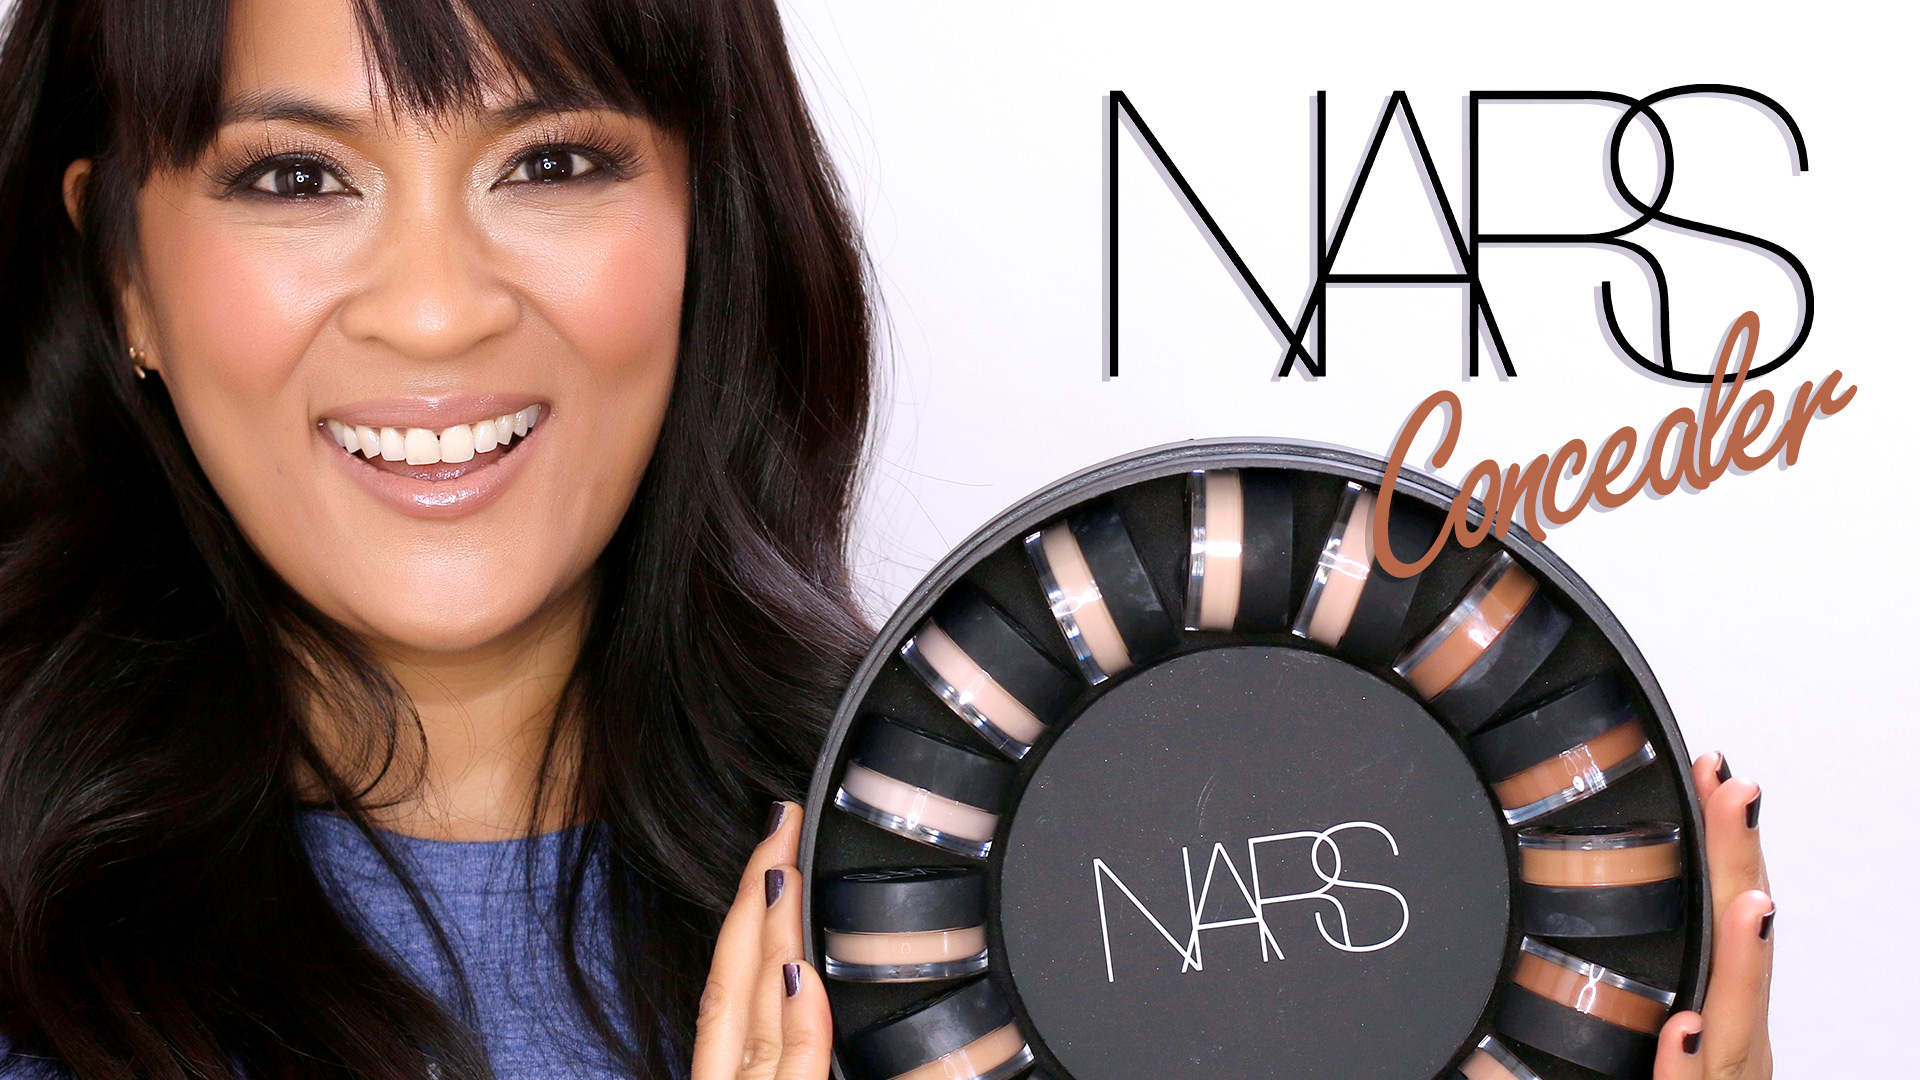 NARS Soft Matte Complete Concealer Review + Swatches